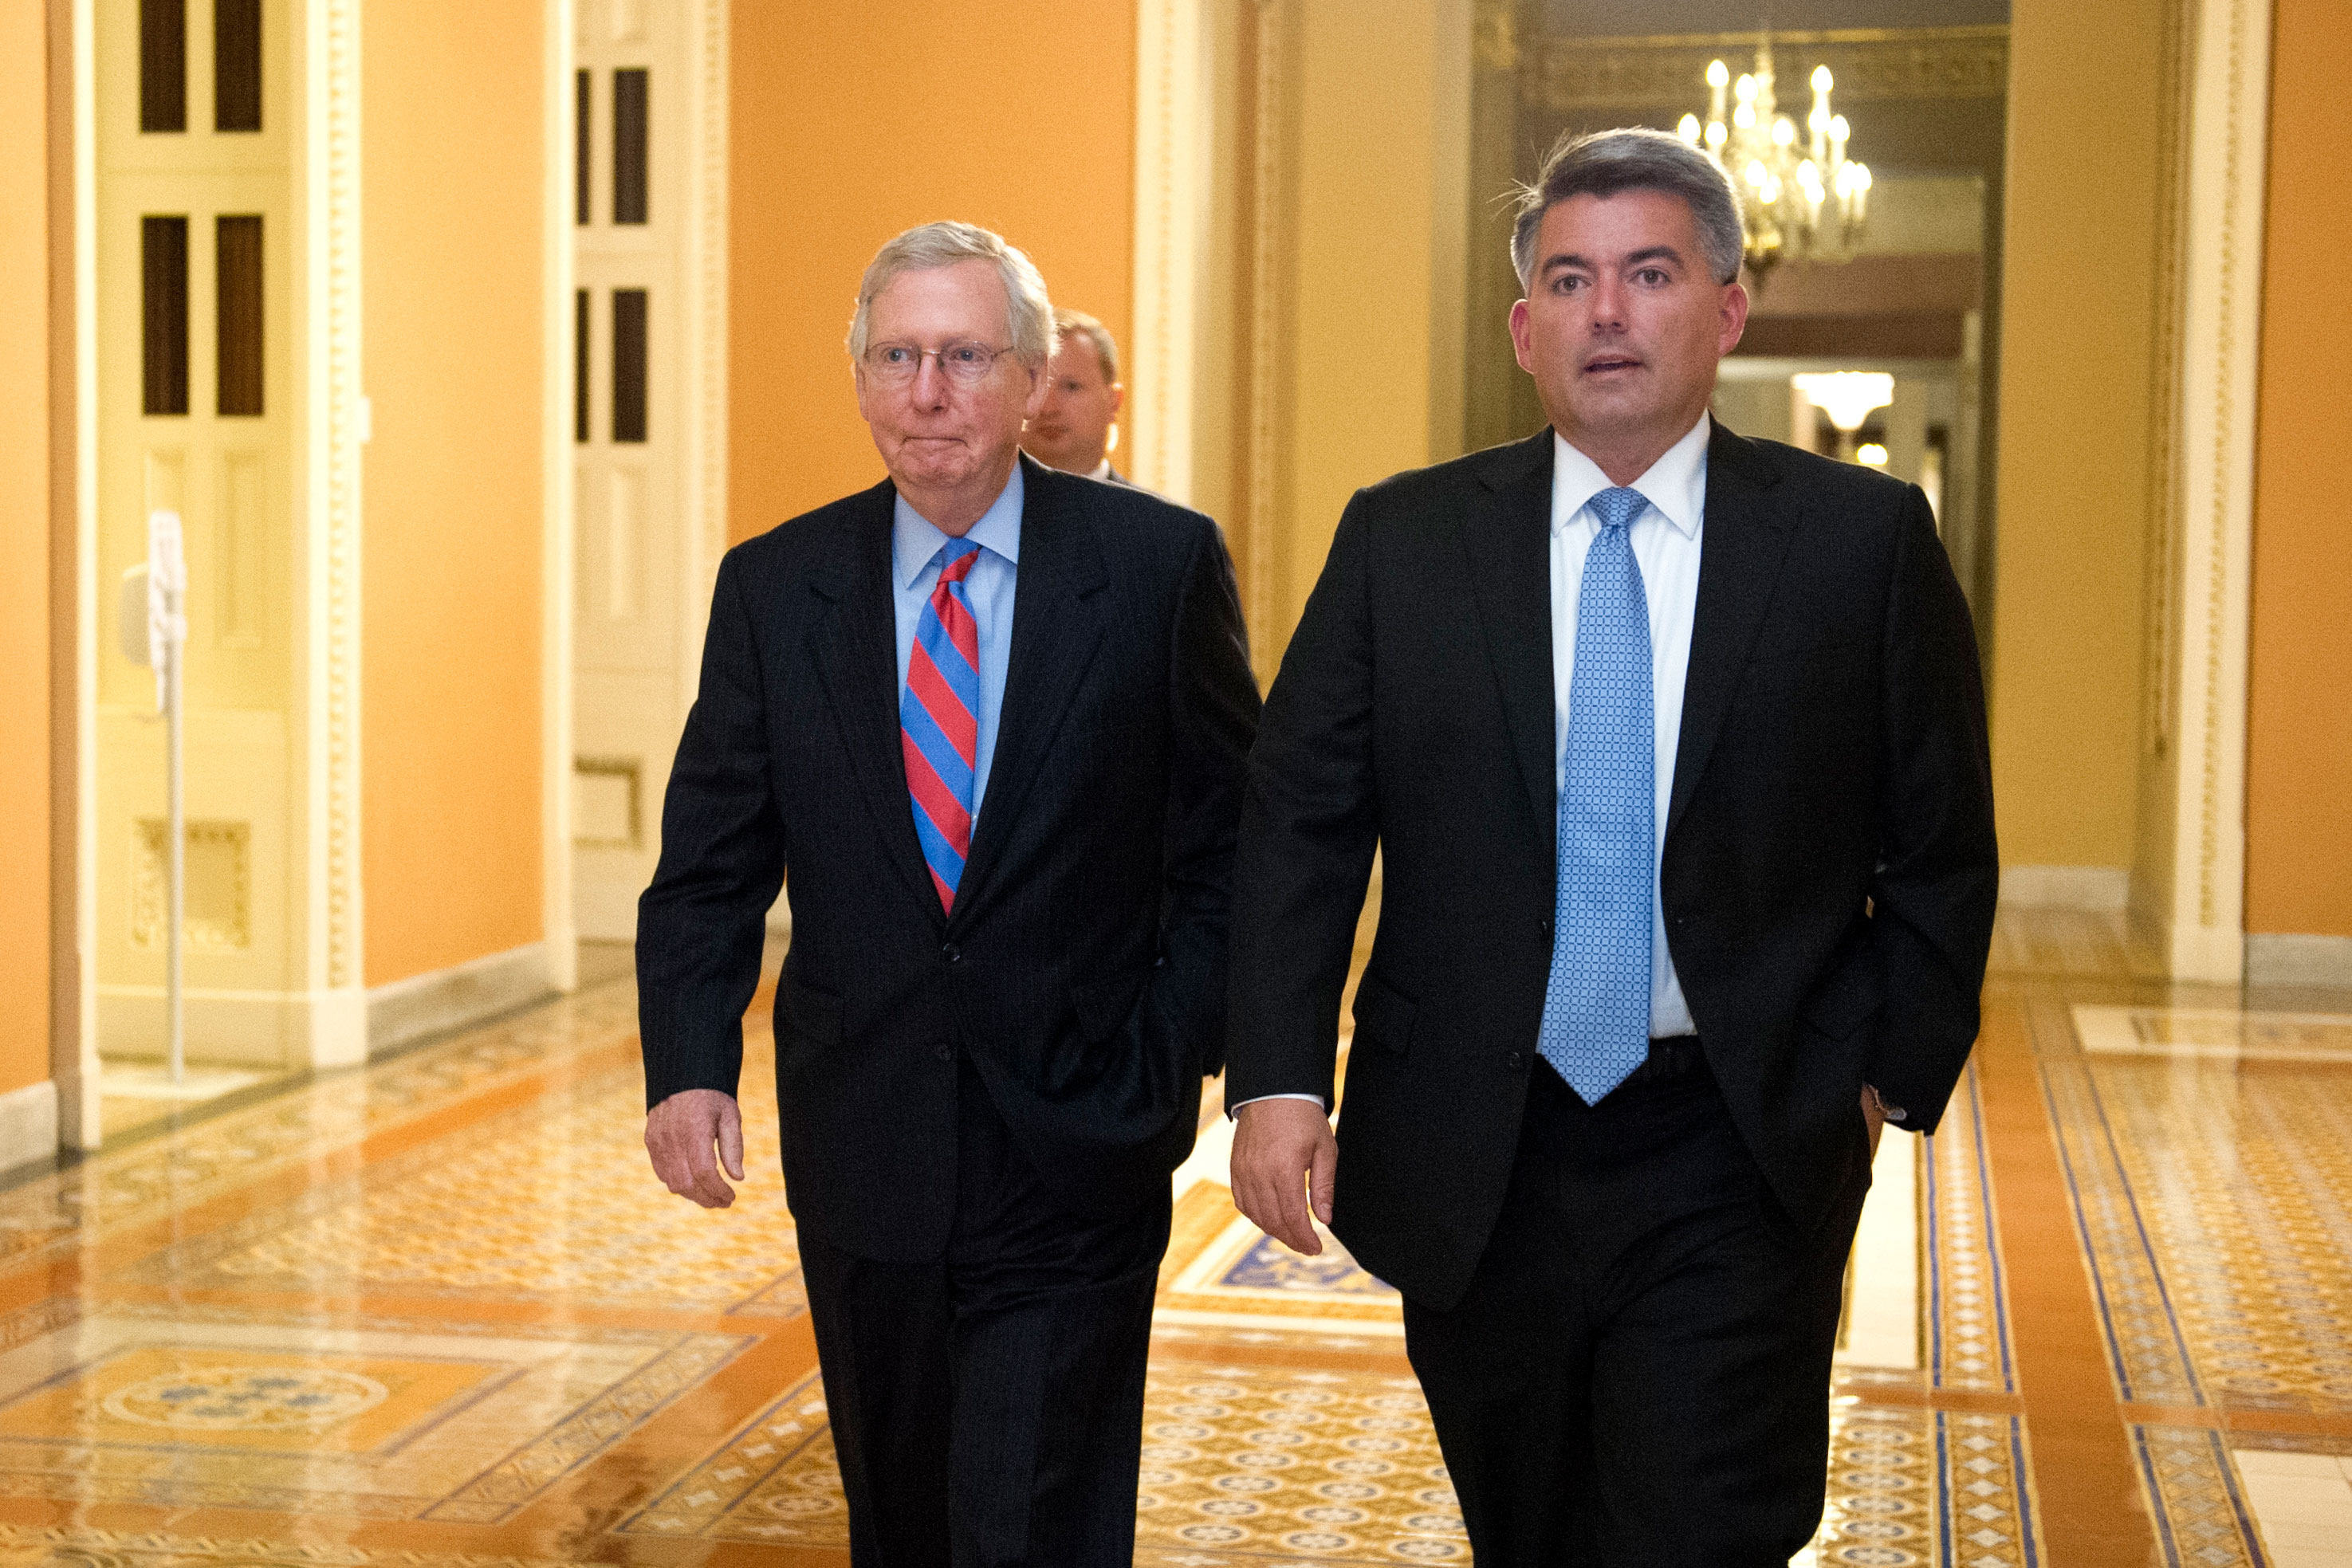 <p>Senate Majority Leader Mitch McConnell of Ky., left, and Sen. Corey Gardner, R-Colo., walk to the Senate Chamber, July 27, 2017.</p>